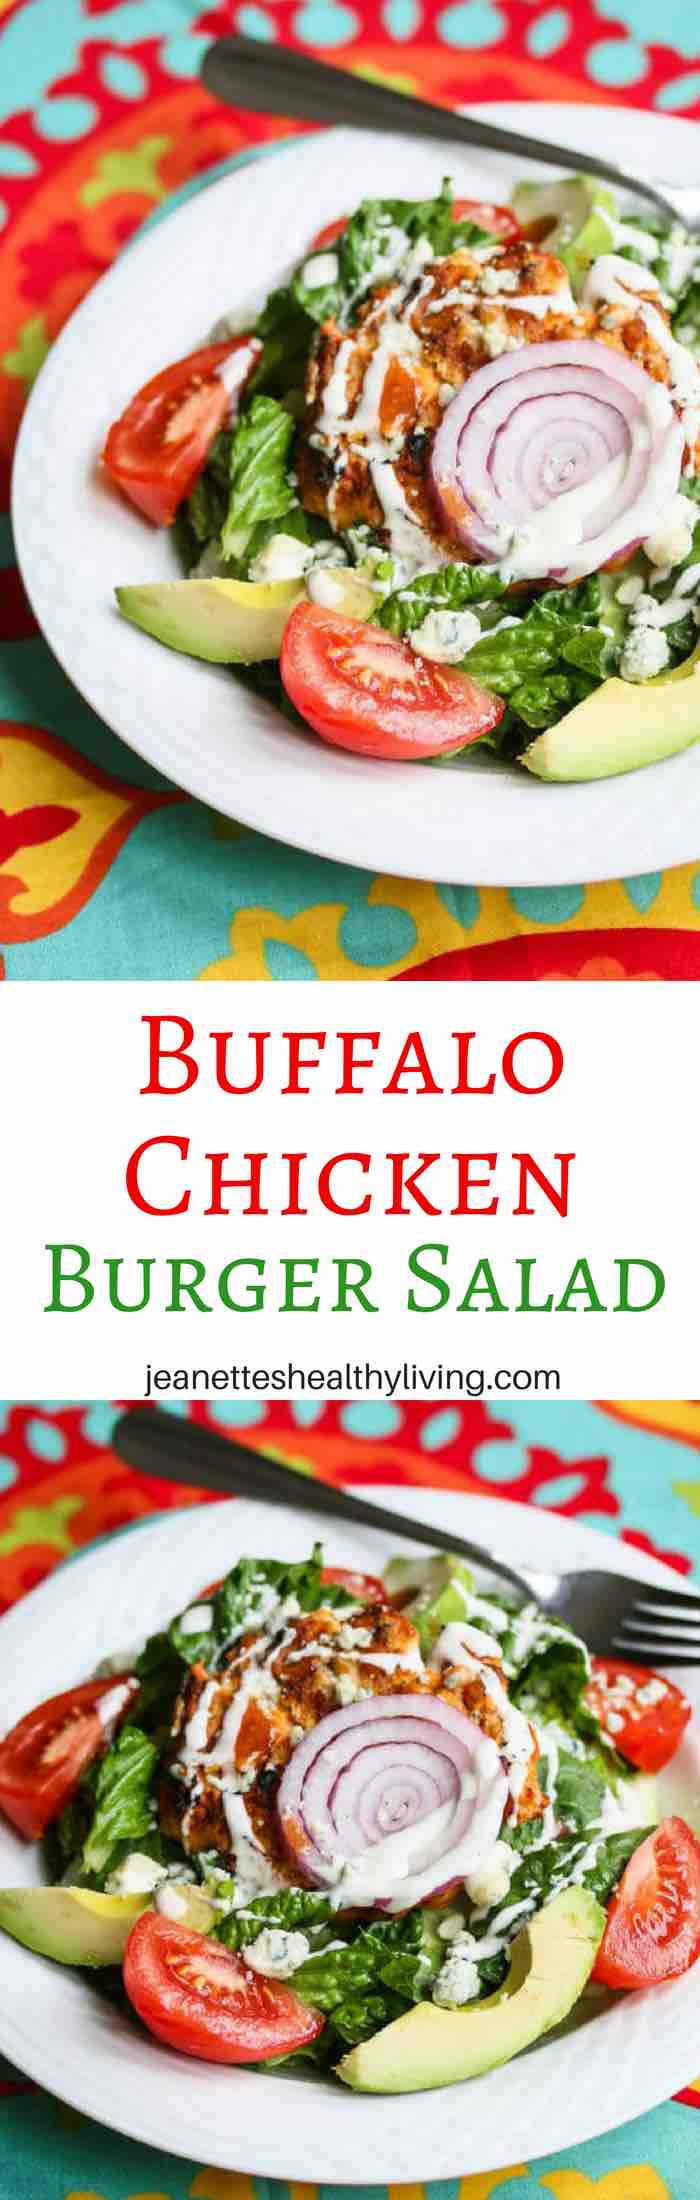 Buffalo Chicken Burger Salad Recipe - simple, delicious and great when you're craving Buffalo chicken but want to keep lunch or dinner light.